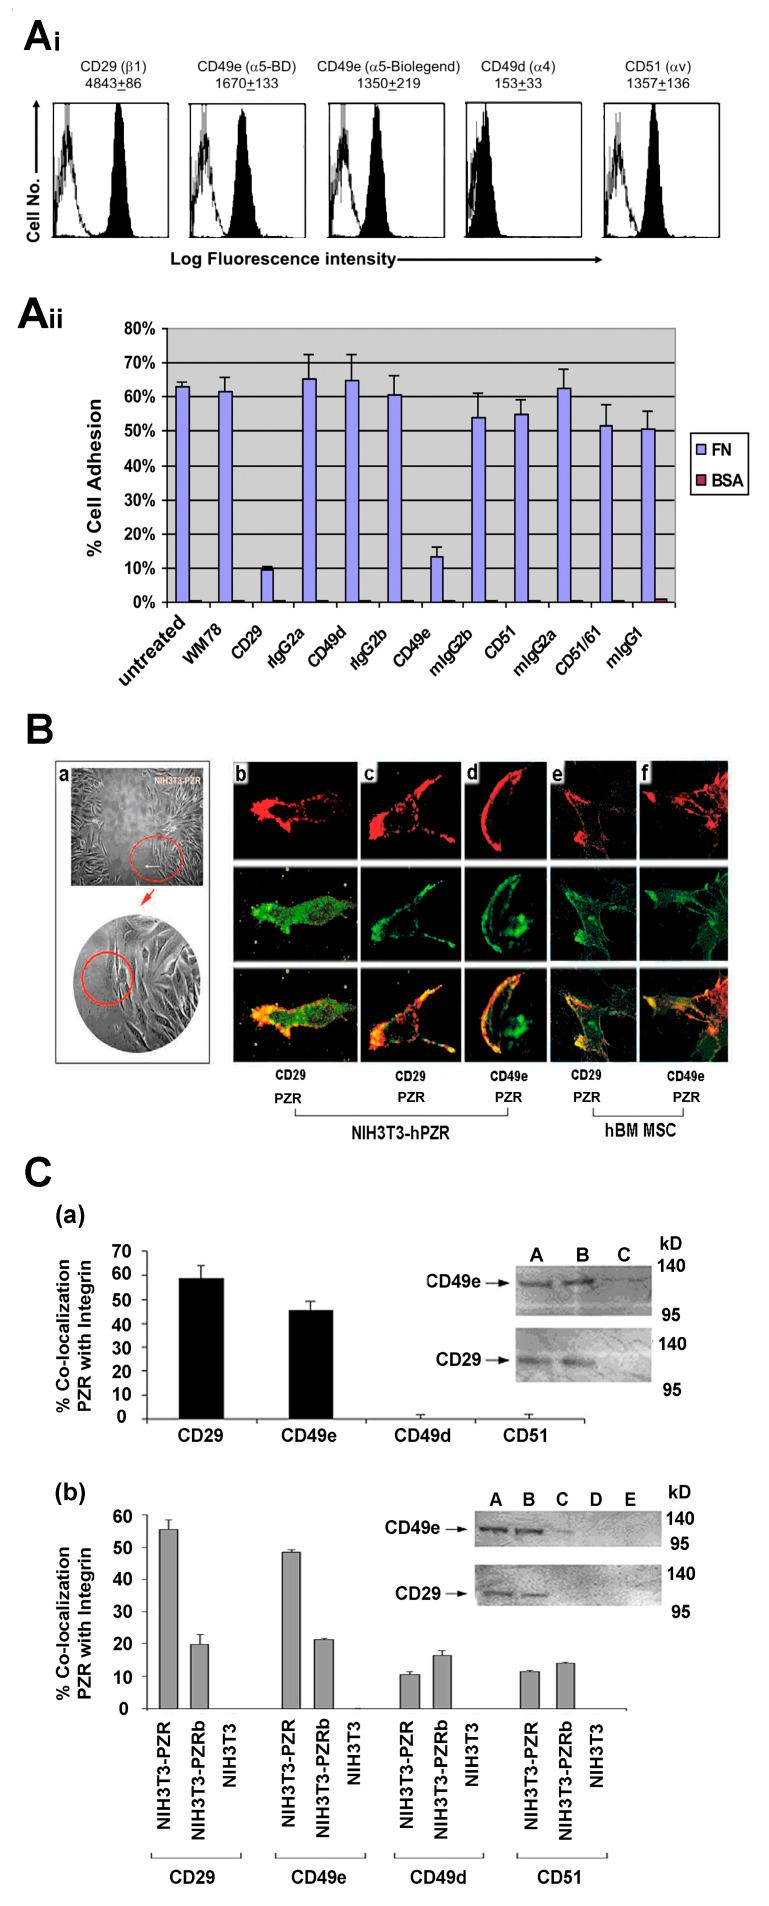 Co-localization of PZR and integrins on migrating NIH3T3 transfectants and hBM MSCs. ( Ai ) Representative FACS histograms of hBM MSCs stained for CD29 (β1 integrin), CD49e (α5 integrin), CD49d (α4 integrin), CD51 (vitronectin receptor), or the relevant isotype control (mIgG1) followed by Alexa-488 goat anti-mIgG1. MFI ± S.E.M. shown above histograms ( n = 3 independent experiments). Black histograms: integrin staining; white histograms: mIgG1 negative control. ( Aii ) hBM MSCs were untreated or incubated with blocking antibodies against CD29, CD49e, CD49d, CD51, and CD51/61 or the corresponding isotype controls before being allowed to adhere to fibronectin (FN) or the negative control, BSA. Values are means ± S.E.M. for three independent experiments performed in triplicate. ( B ) Migration assay using NIH3T3-hPZR ( a ) with one area analyzed by confocal microscopy circled in red. ( b,c ) NIH3T3-PZR transfectants from the 6 h migratory interface double stained with WM78 (PZR; green stain) and biotin-CD29 (red stain) or ( d ) biotin-CD49e (red stain) plus appropriate secondary fluorescent reagents. hBM MSCs from the 6 h migratory interface double stained with WM78 and Alexa488 goat anti mIgG1 (PZR; green stain), then blocked with mIgG1 and stained with biotinylated ( e ) CD29 (red stain) or ( f ) CD49e (red stain) with streptavidin-conjugated Alexa 546. There is a co-association of PZR with α5 (CD49e) or β1 (CD29) at the leading edge of the migrating cell. C ( a ) Quantitation of PZR co-localizing with CD29 and CD49e or CD49d and CD51 in 6 h migrating hBM MSCs. Values are means ± S.E.M. for three independent experiments performed in triplicate. Inset shows co-immuno-precipitation and Western blotting with respective the anti-PZR WM78 mAb and biotin conjugated anti-human CD49e or CD29, and using mIgG1 as the negative control for the immunoprecipitation (i.p.). Lane A: hBM MSC cell lysate, lane B: hBM MSC i.p with anti-PZR, lane C: hBM MSC i.p. with negative control. C